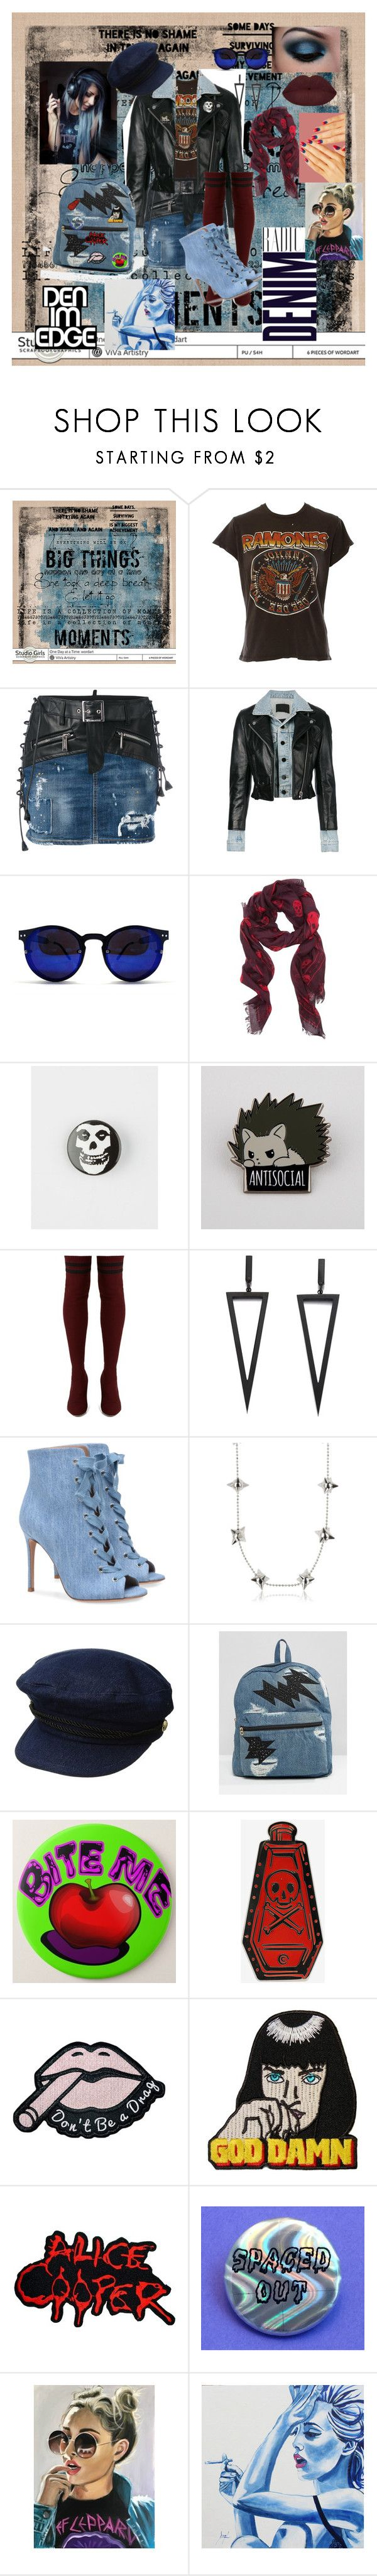 """Denim and Leather-Punk it out"" by melissa-jones-01 ❤ liked on Polyvore featuring MadeWorn, Dsquared2, Alexander Wang, Spitfire, Alexander McQueen, C&D Visionary, Tabitha Simmons, Lauren Ralph Lauren, Juicy Couture and Wallace"